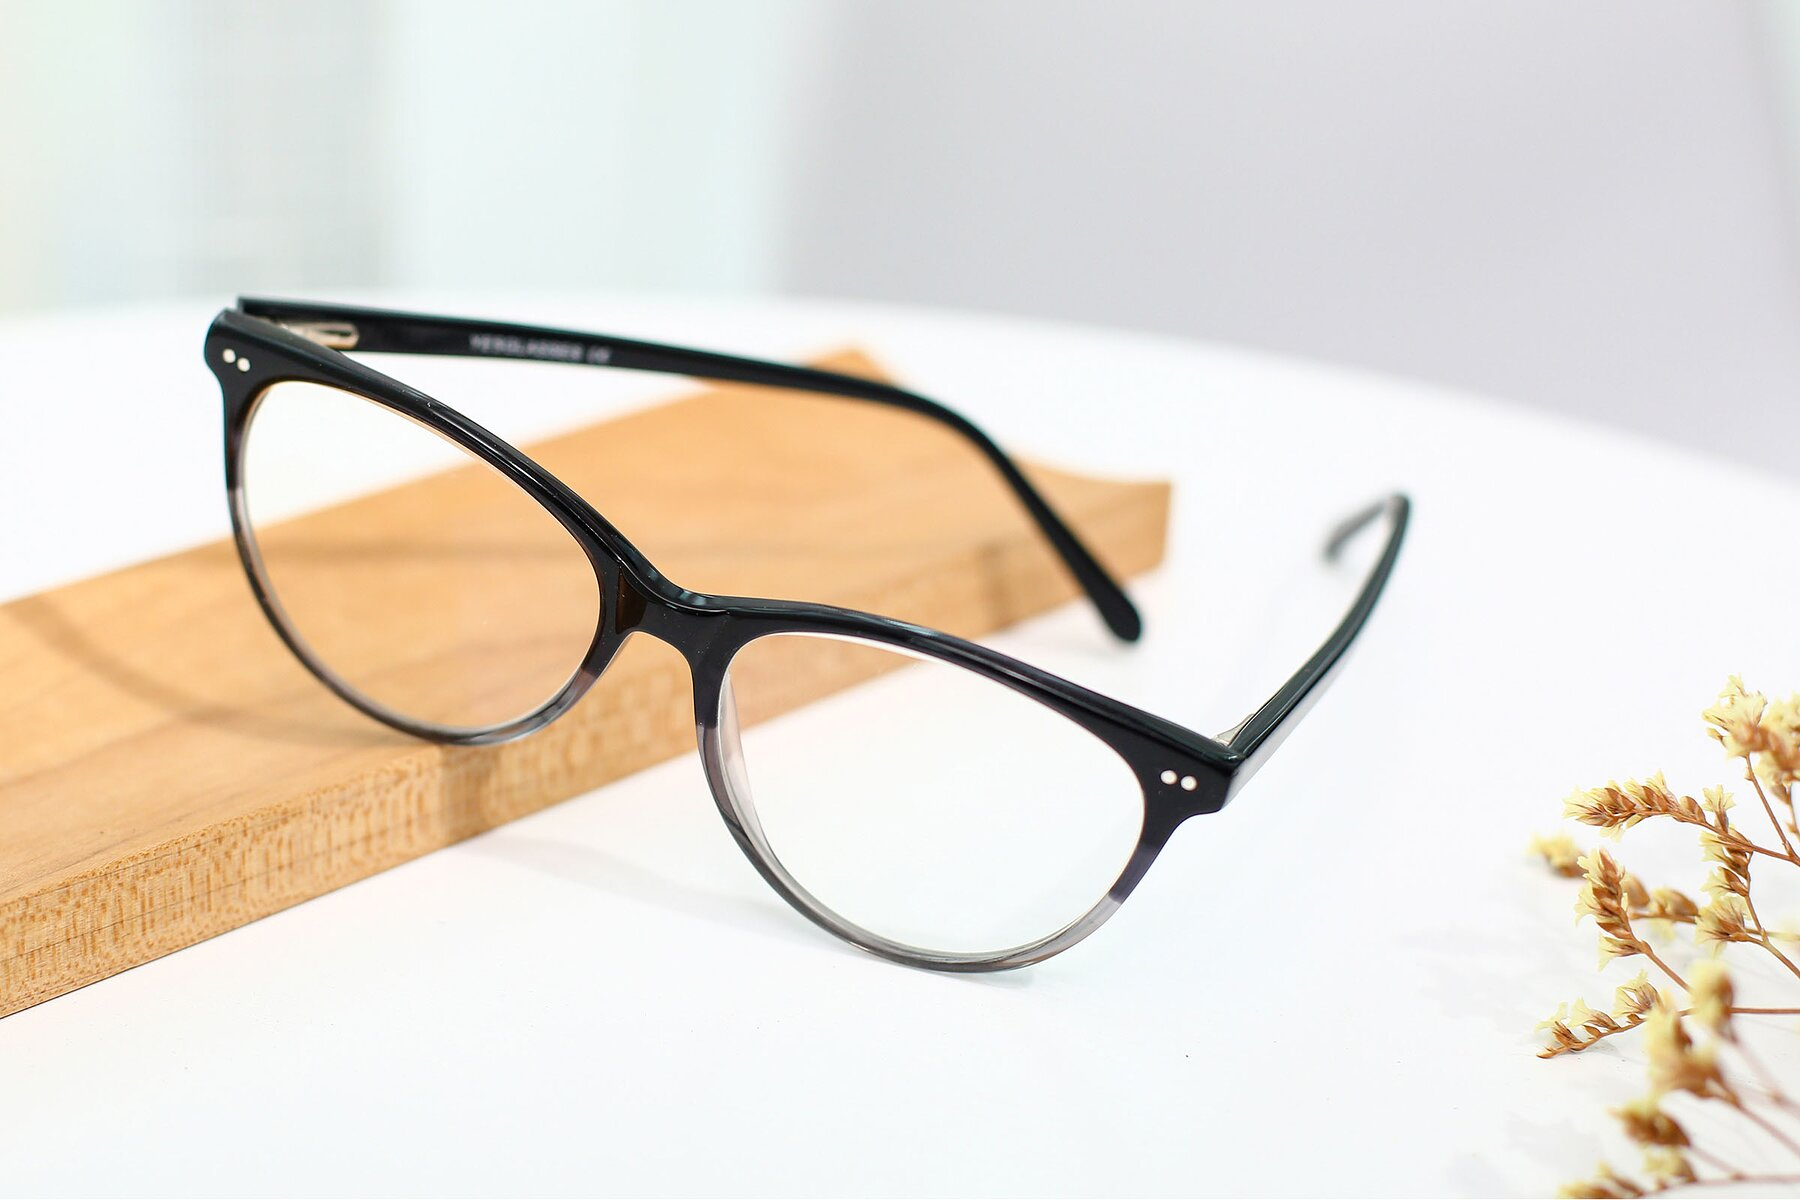 Women's lifestyle photography #2 of SR6050 in Transparent Gradient Black with Clear Eyeglass Lenses